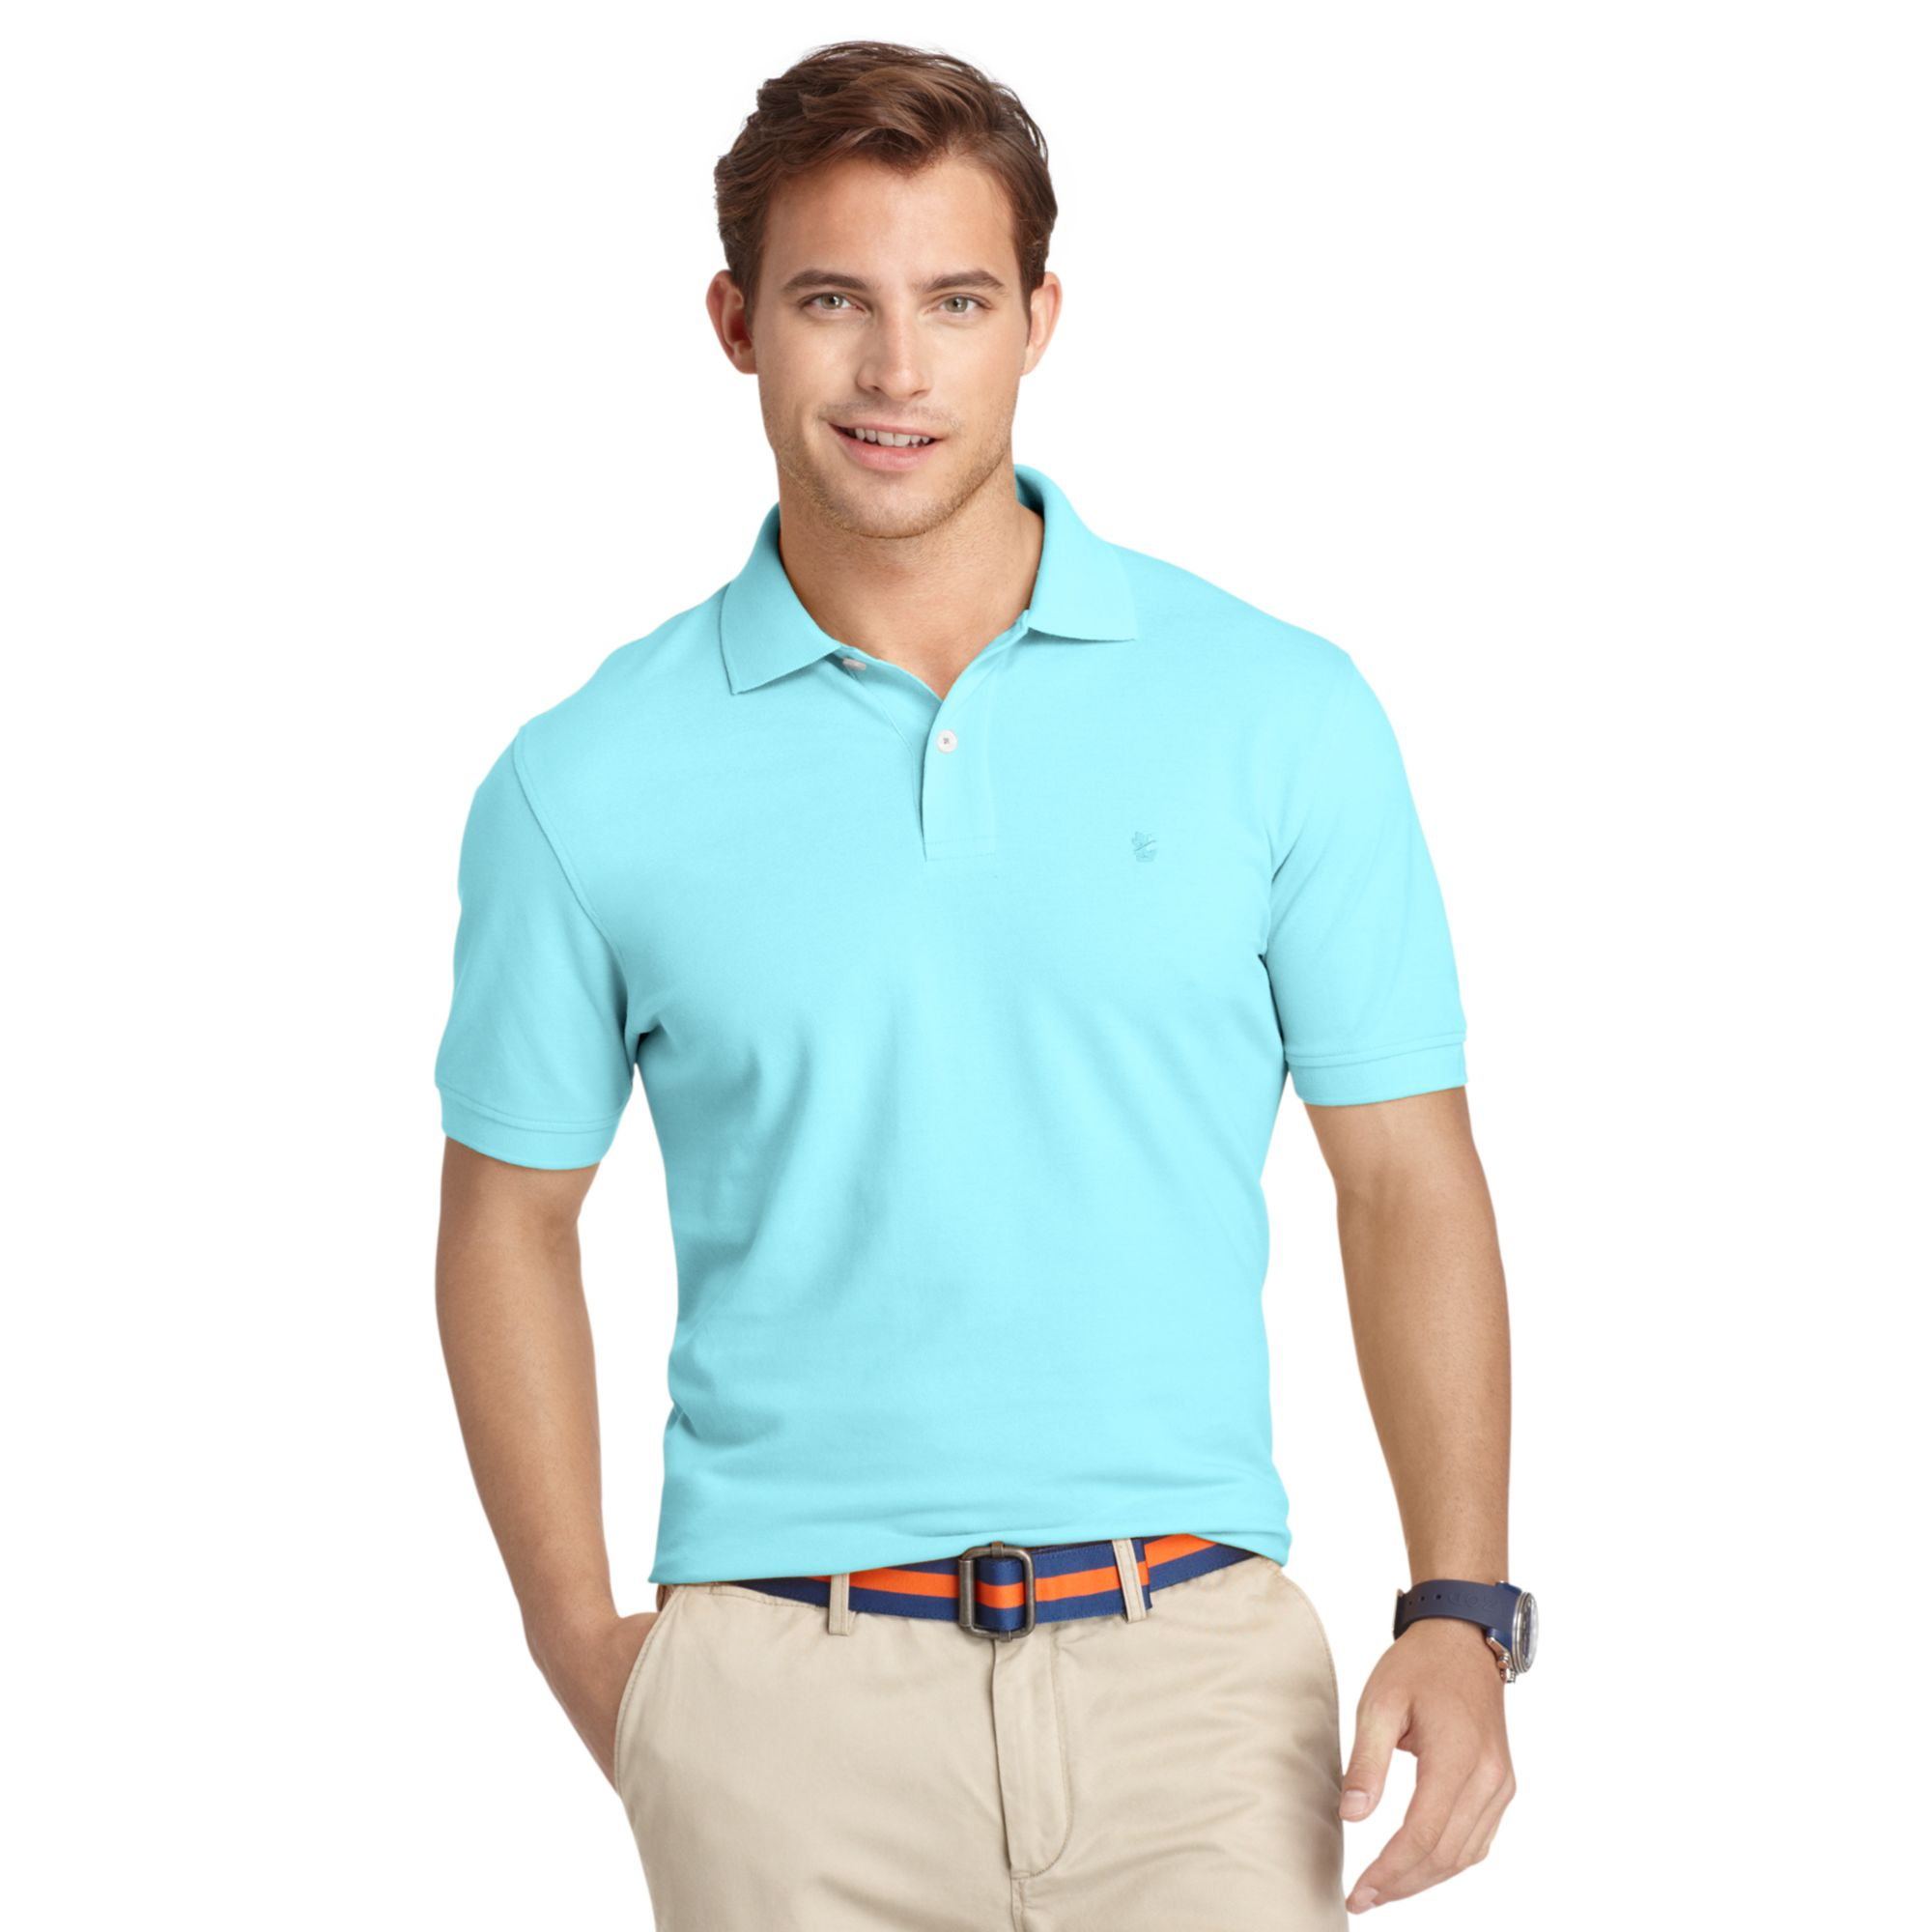 Lyst izod big and tall shirt oxford pique polo shirt in for Big and tall oxford shirts